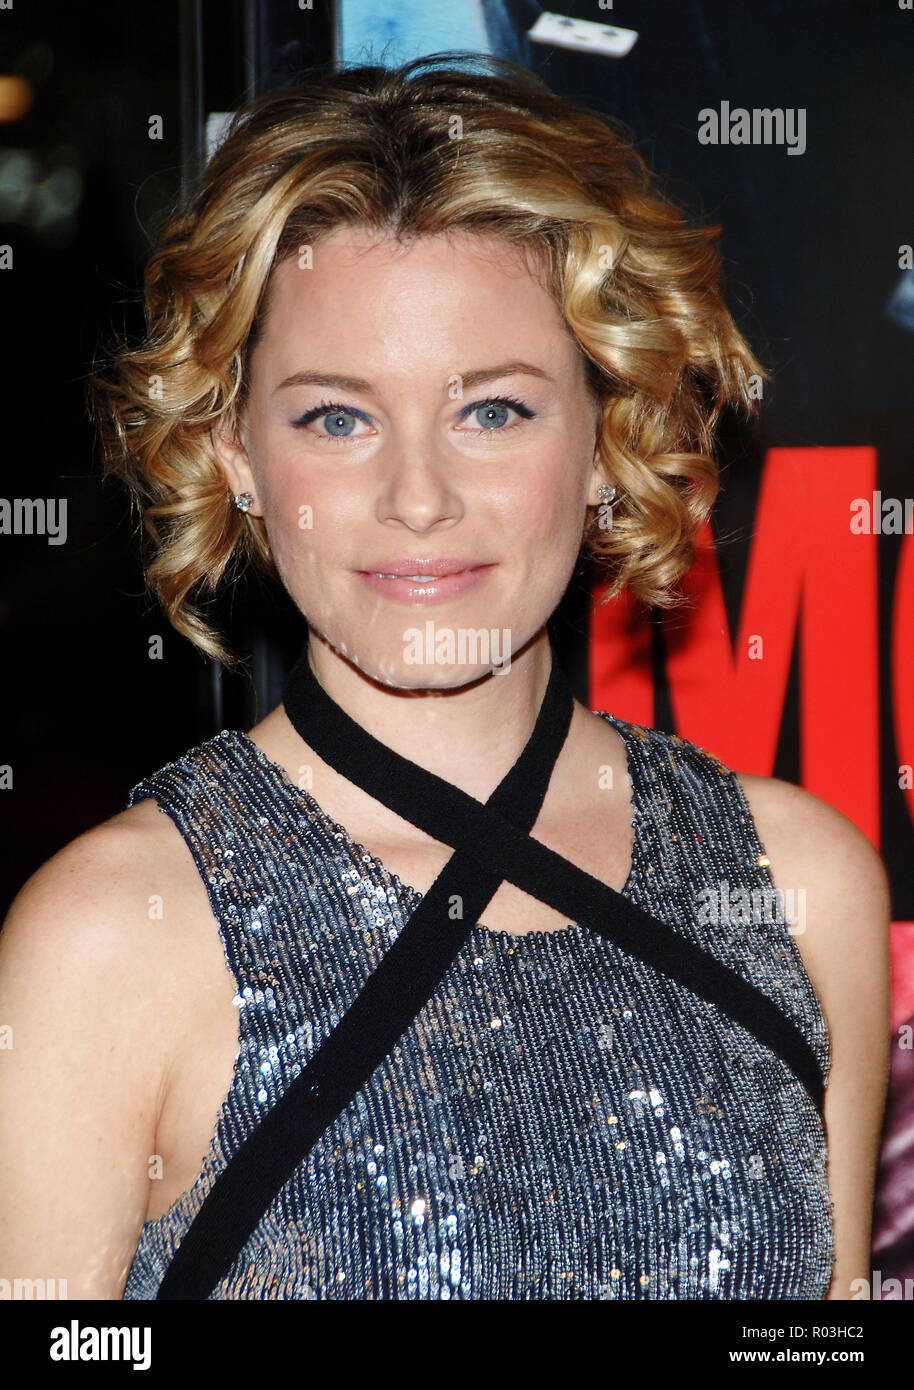 Elizabeth Banks arriving at the Smokin' Aces at the Chinese Theatre In Los Angeles. January 18, 2007.  eye contact portrait headshot silver metal dressBanksElizabeth042 Red Carpet Event, Vertical, USA, Film Industry, Celebrities,  Photography, Bestof, Arts Culture and Entertainment, Topix Celebrities fashion /  Vertical, Best of, Event in Hollywood Life - California,  Red Carpet and backstage, USA, Film Industry, Celebrities,  movie celebrities, TV celebrities, Music celebrities, Photography, Bestof, Arts Culture and Entertainment,  Topix, headshot, vertical, one person,, from the year , 2007, Stock Photo